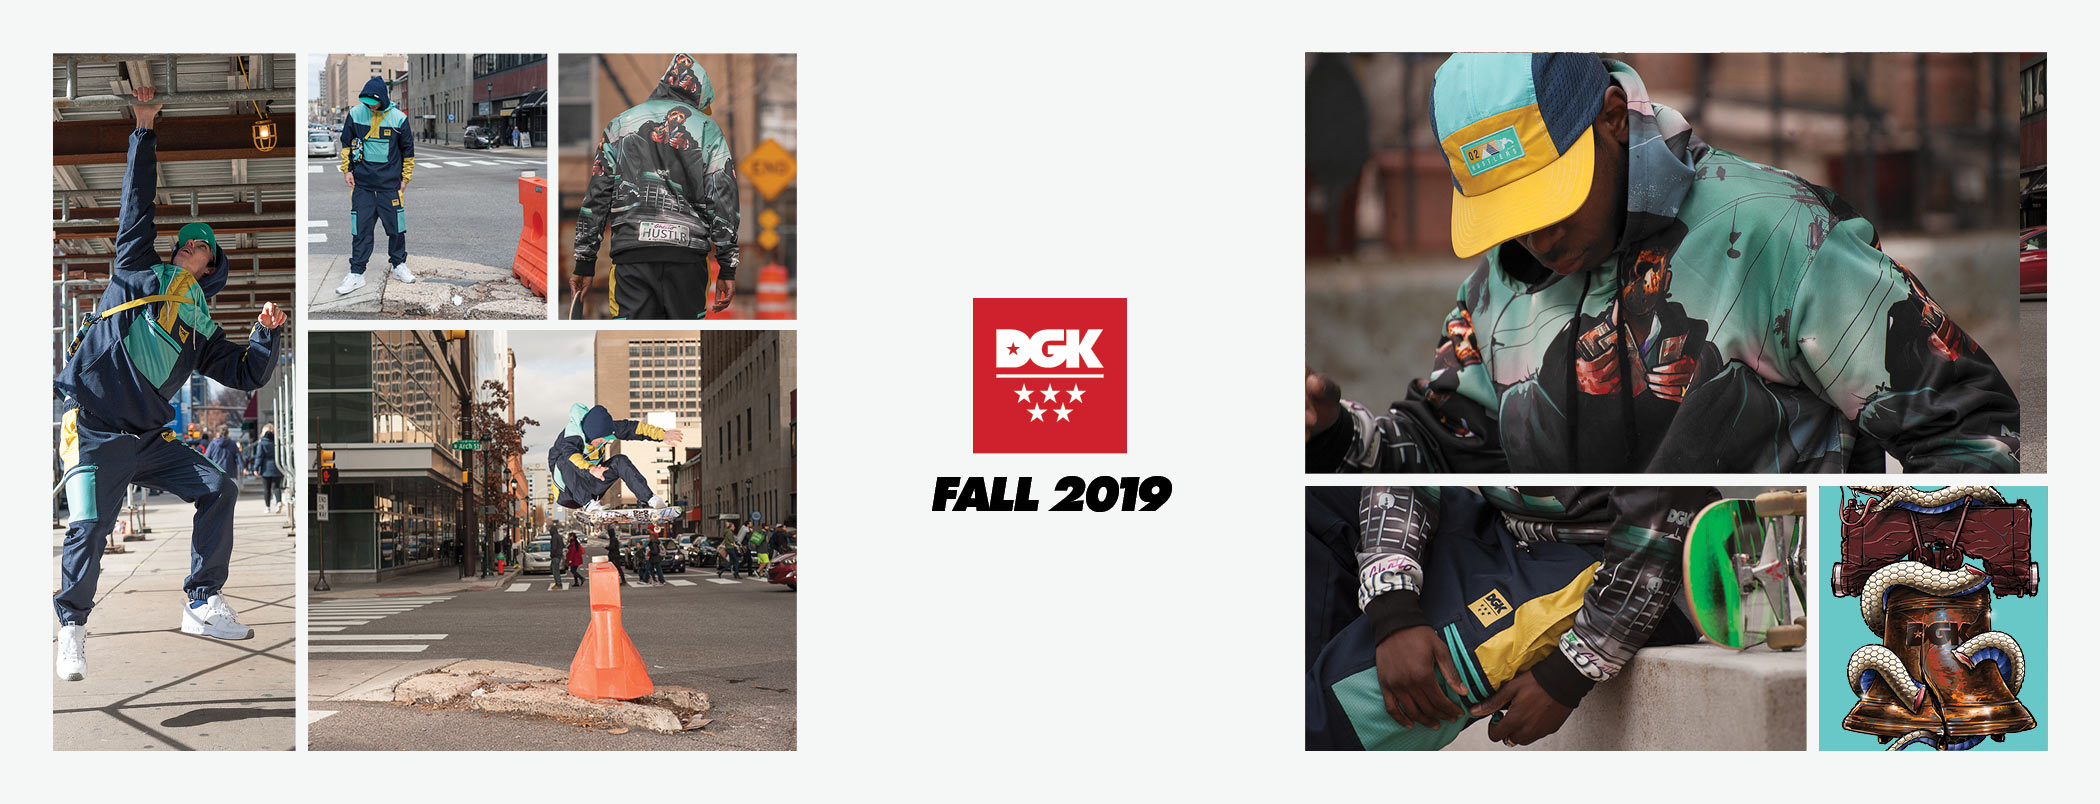 DGK Ruckus Collection Fall 2019